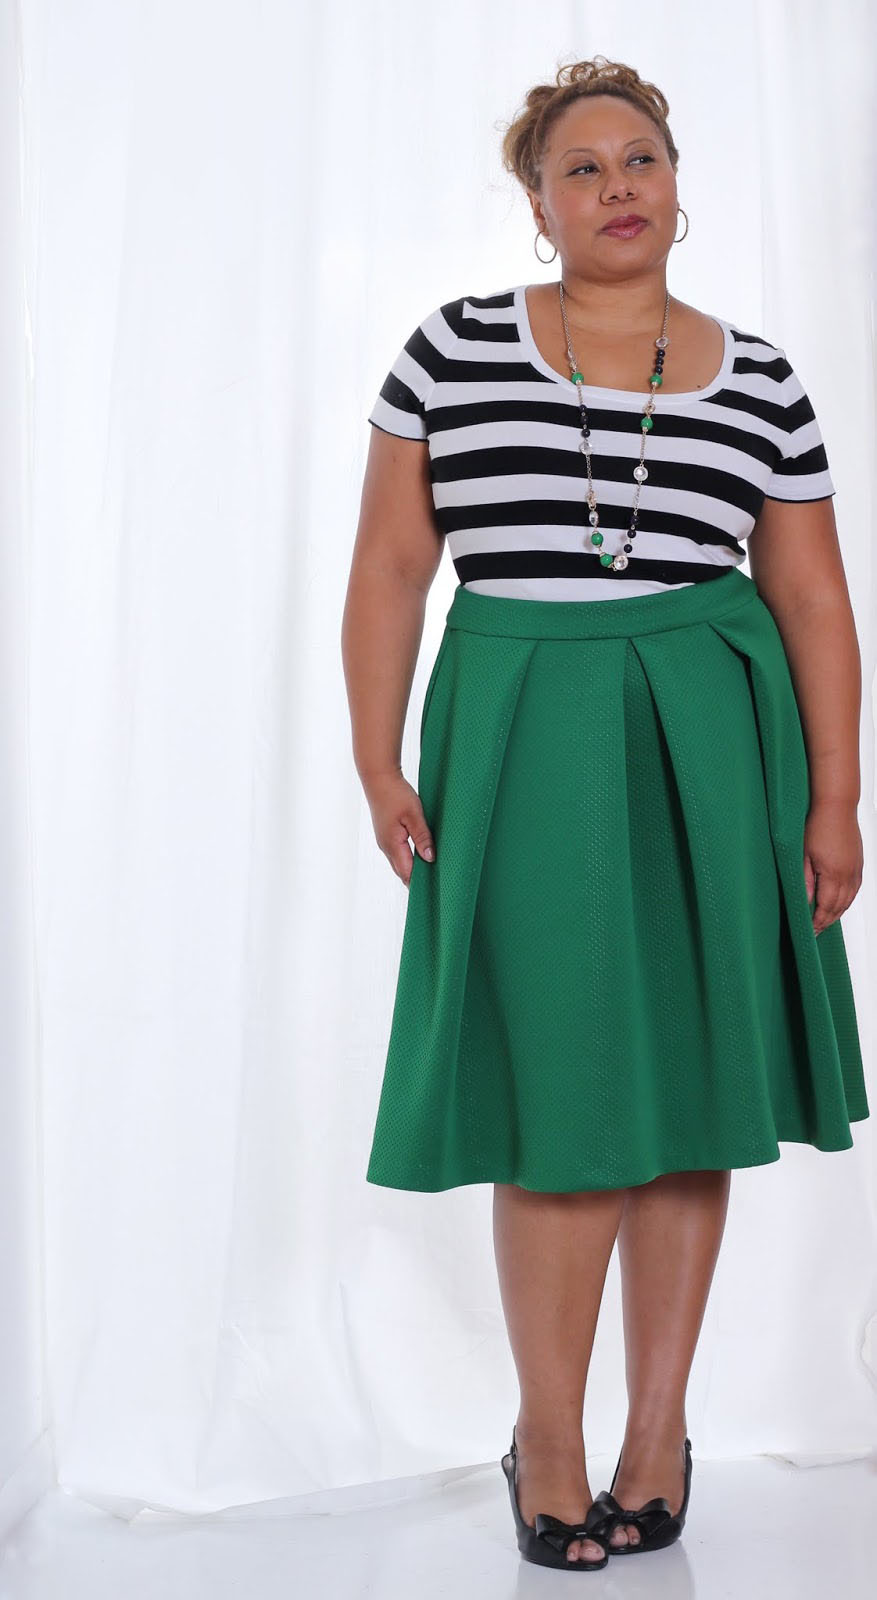 Green Bocade Skirt (Business Casual Attire) | Curvy Outfit Ideas | Petite Outfit Ideas | Plus Size Fashion | Fall Fashion | OOTD | Professional Casual Chic Fashion and Style Inspiration